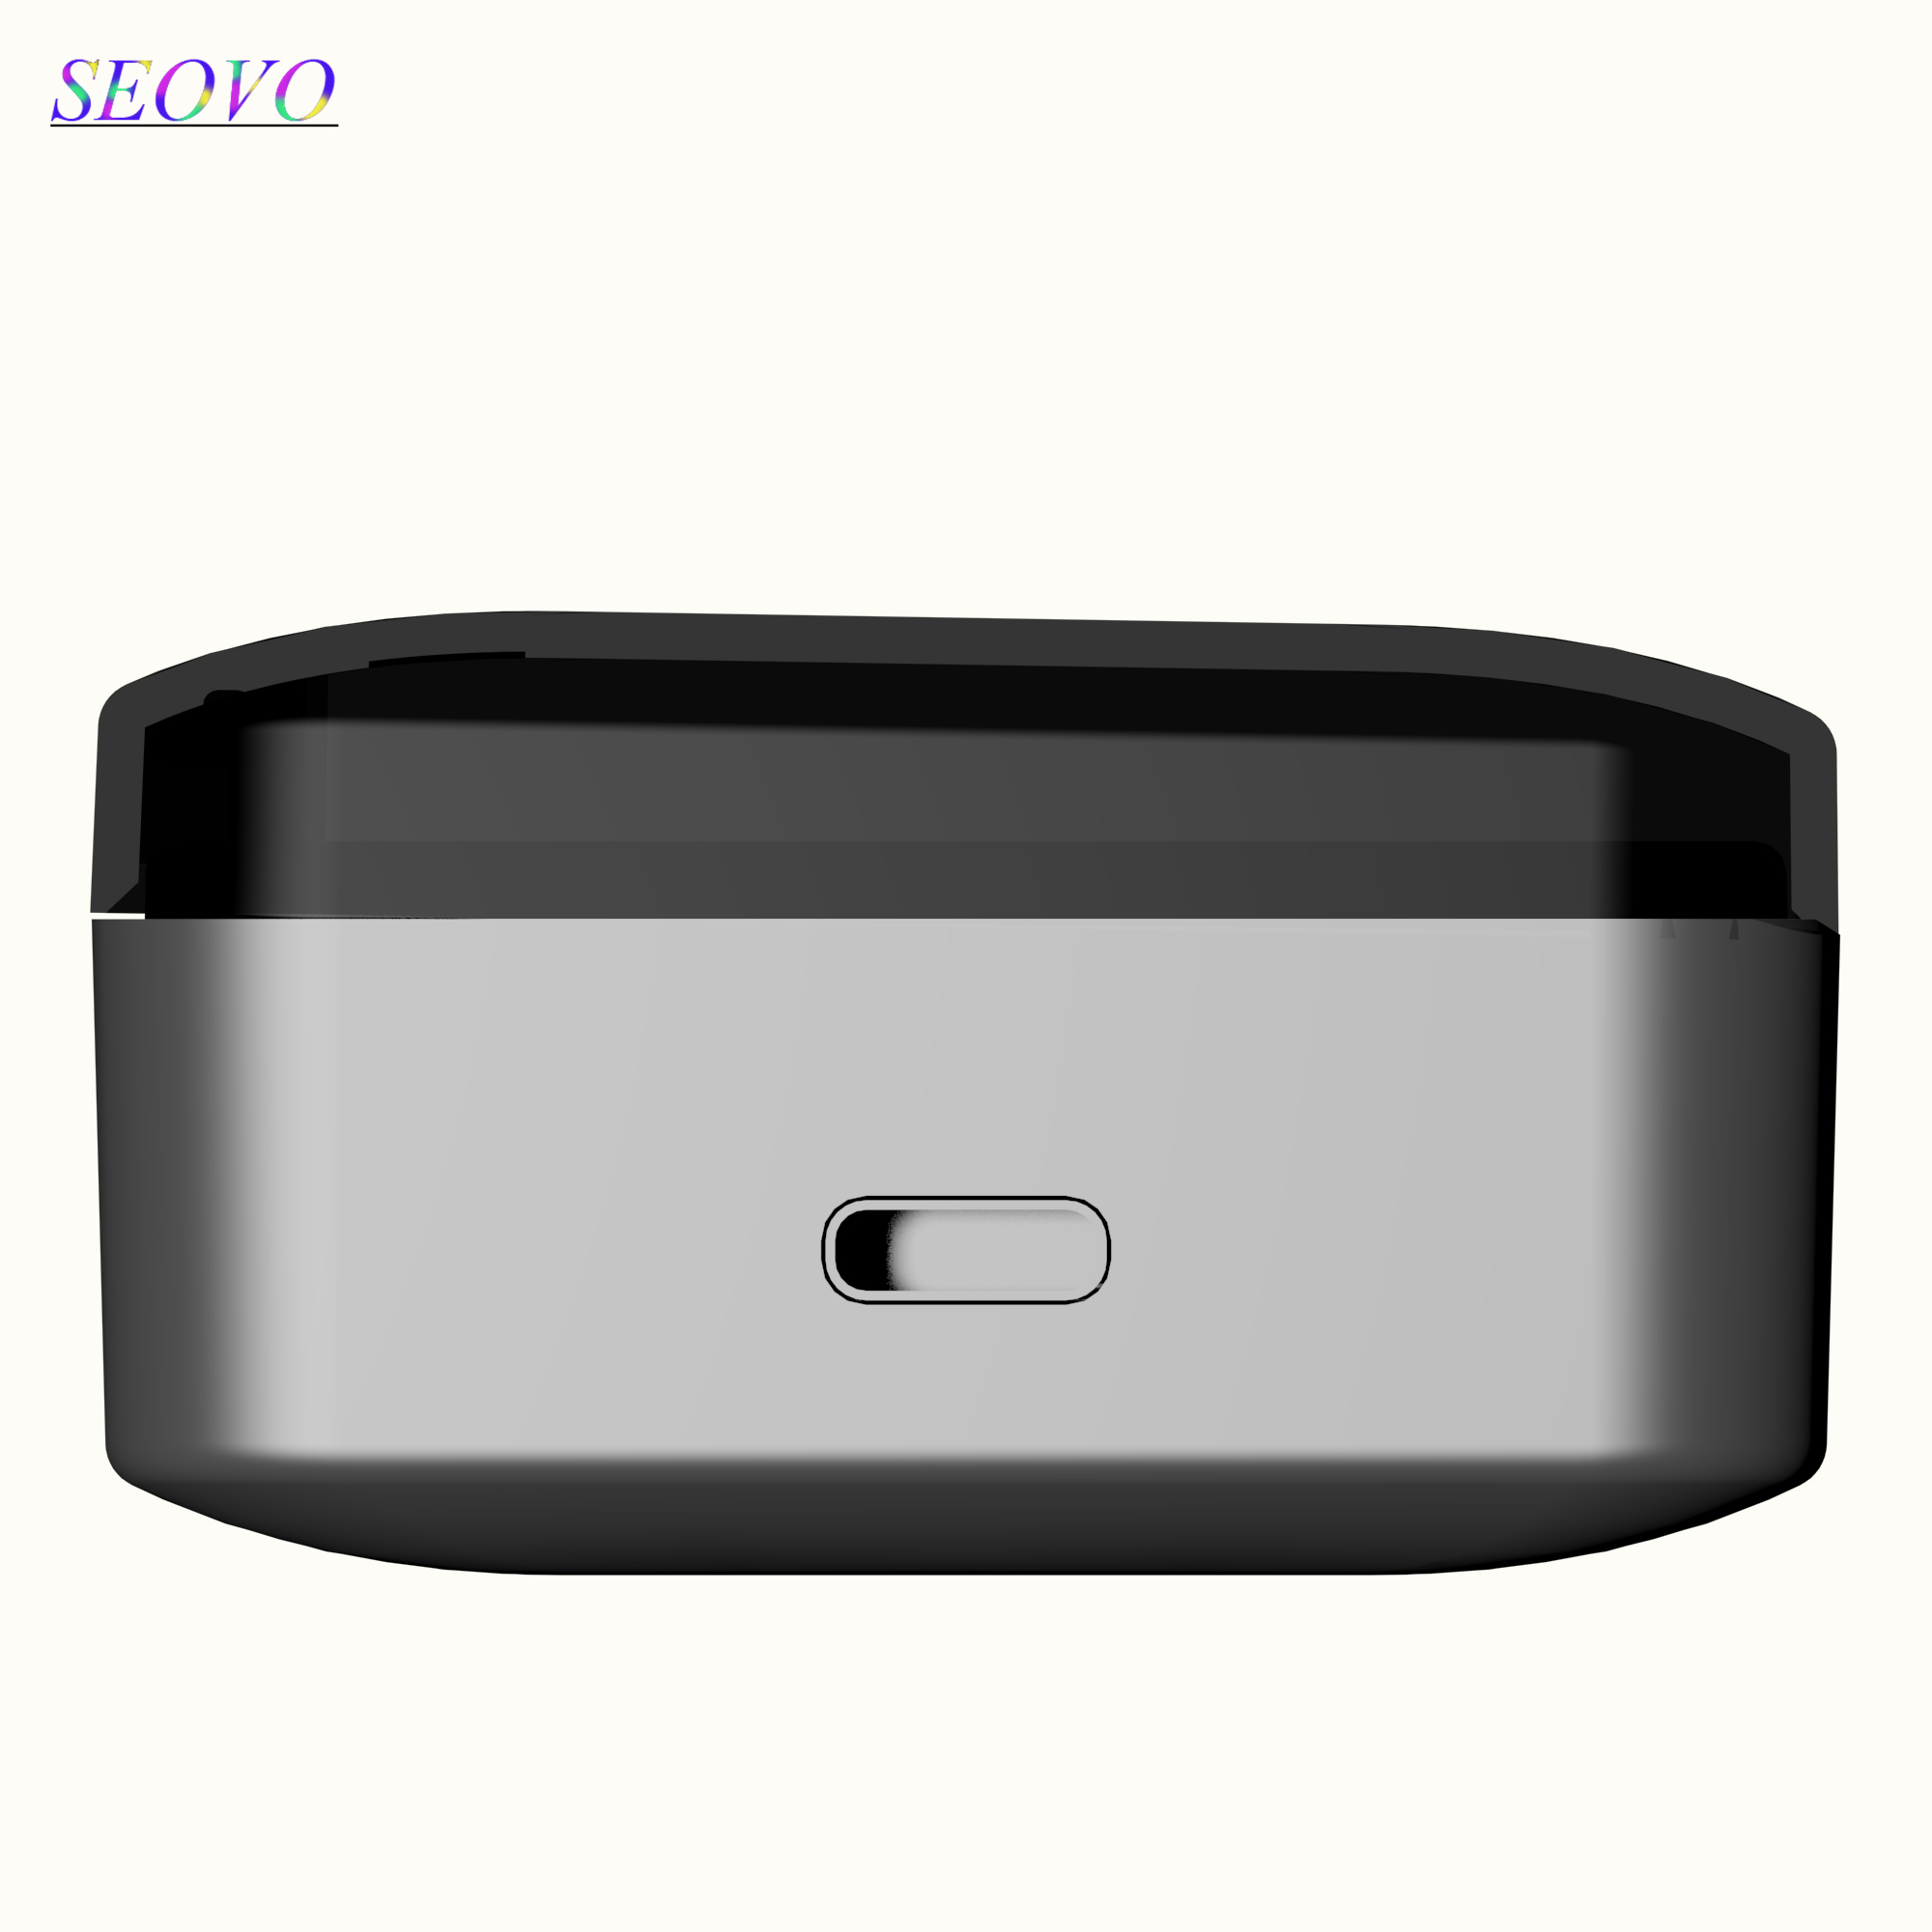 Seovo mini stereo super bass wireless tws touch control sport earbudsmusic air dots free hand bluetooth earphone power bank in Bluetooth Earphones Headphones from Consumer Electronics